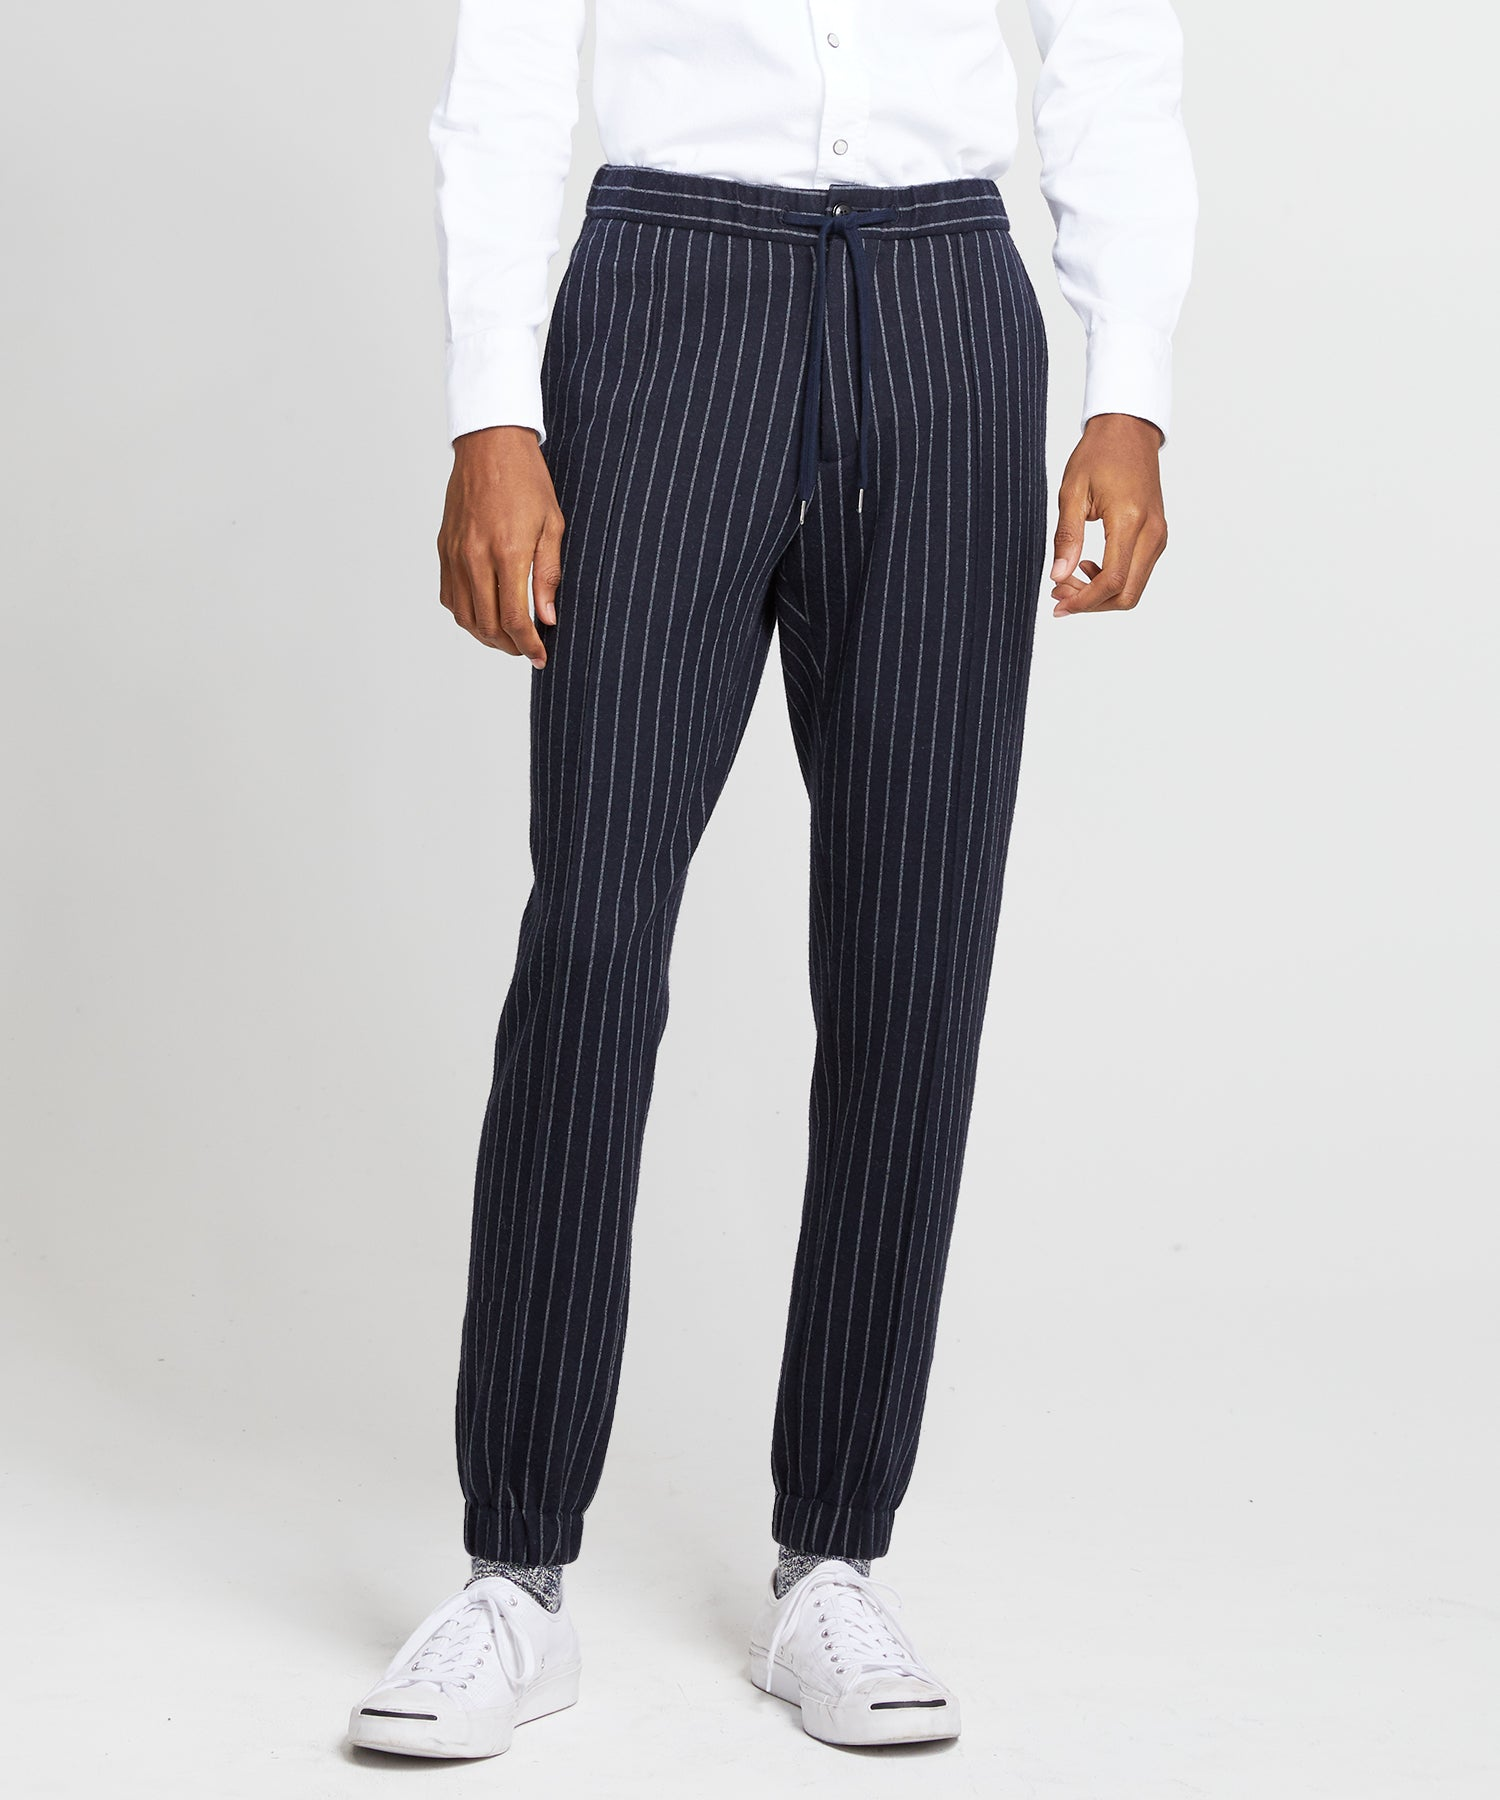 Knit Traveler Suit Trouser in Navy Pinstripe